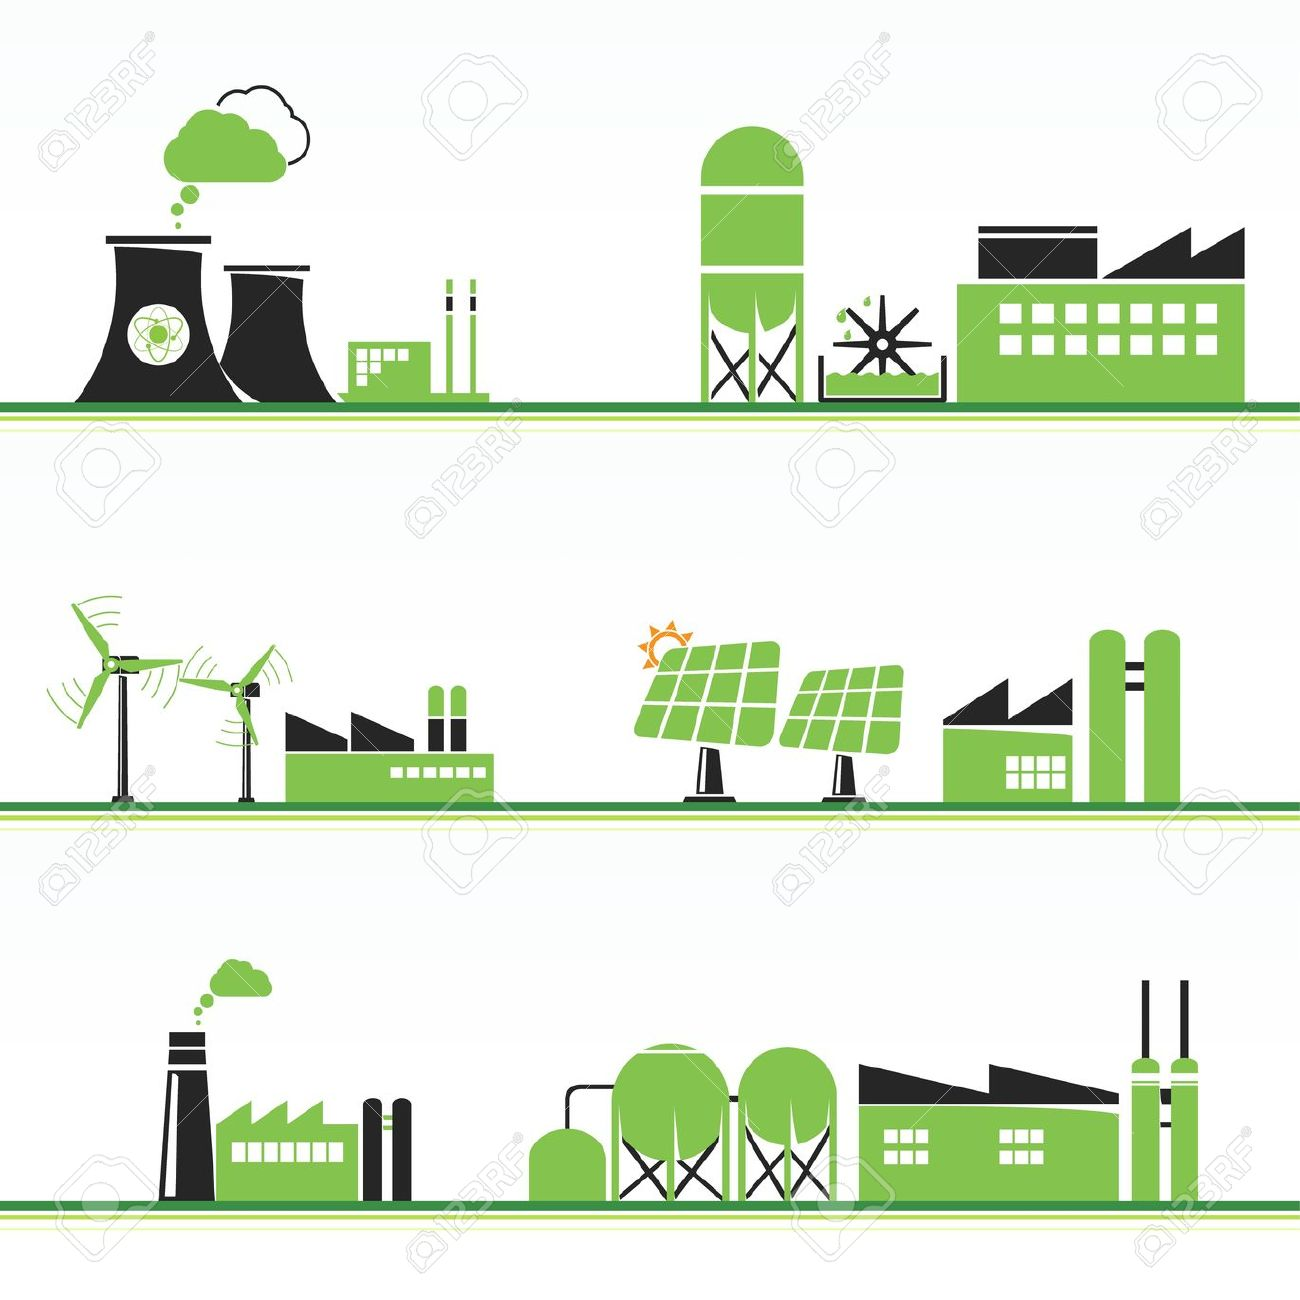 ECO Power Plants And Facilities Royalty Free Cliparts, Vectors.